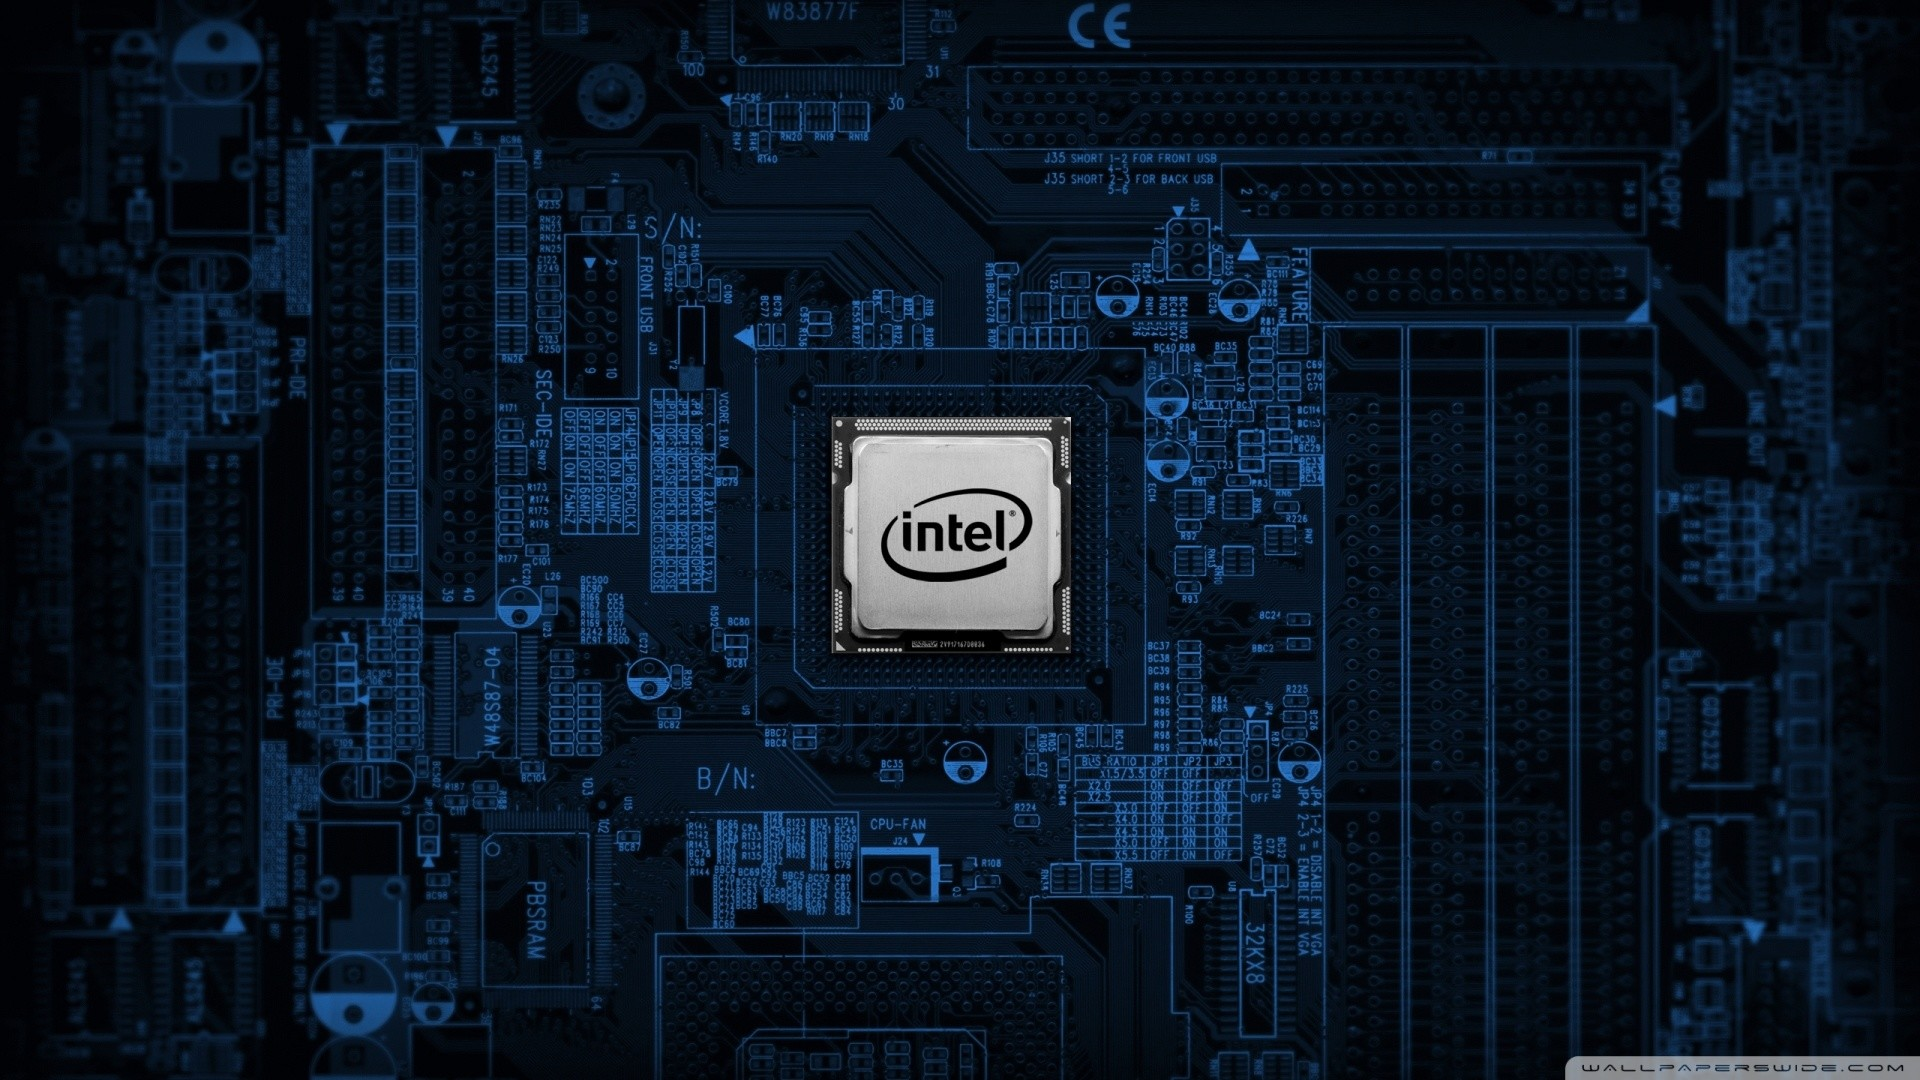 Engineering And Technology Ultra Hd Wallpapers: Intel Wallpaper 1920x1080 HD (77+ Images